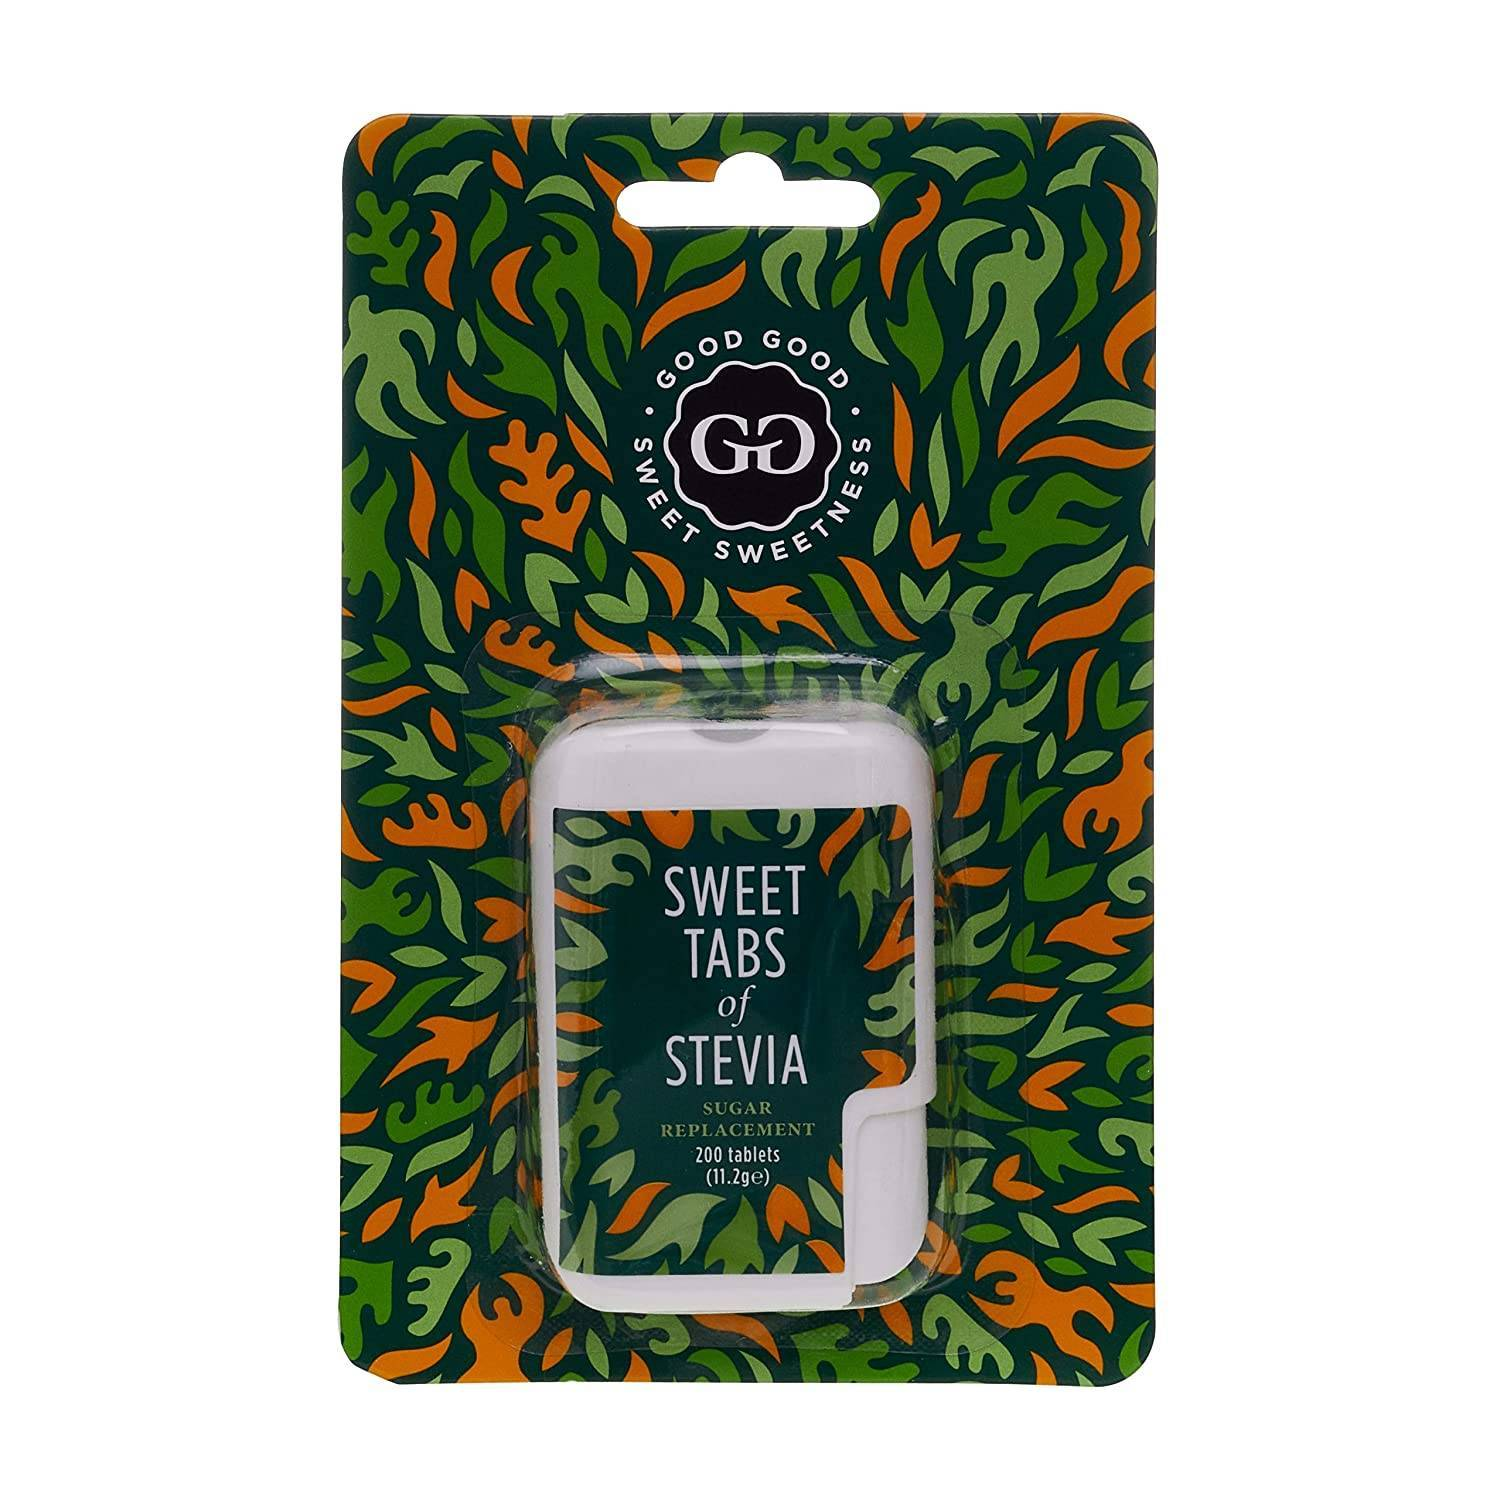 Good Good Stevia - Sweet Stevia Tabs Display 200tabs (x 10pack)